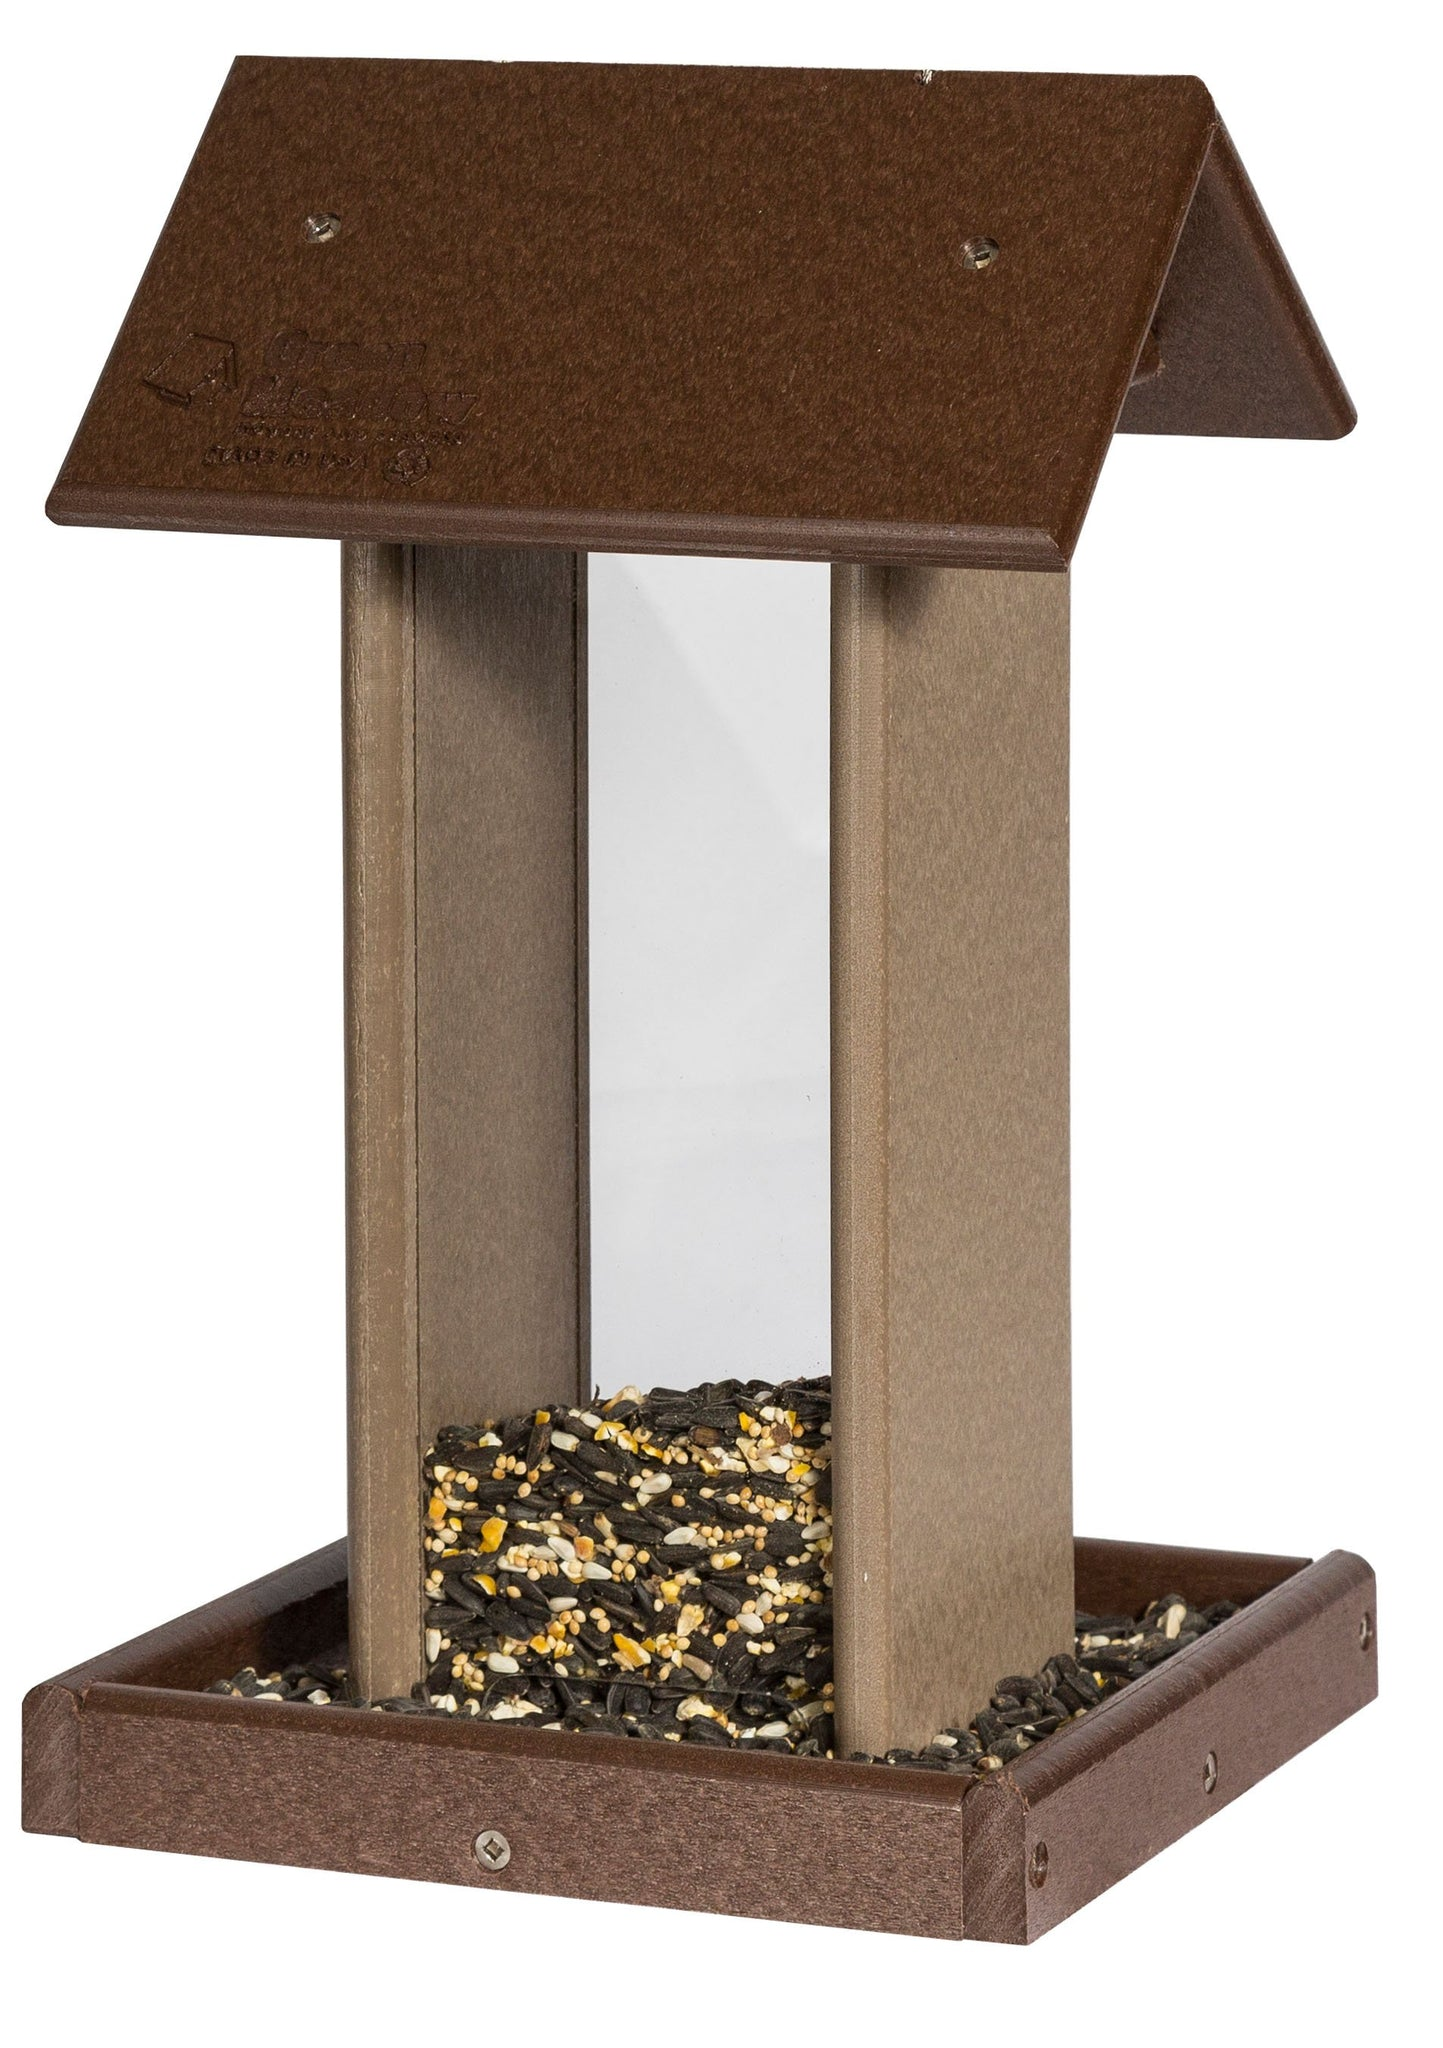 USA made Tall Bird Feeder